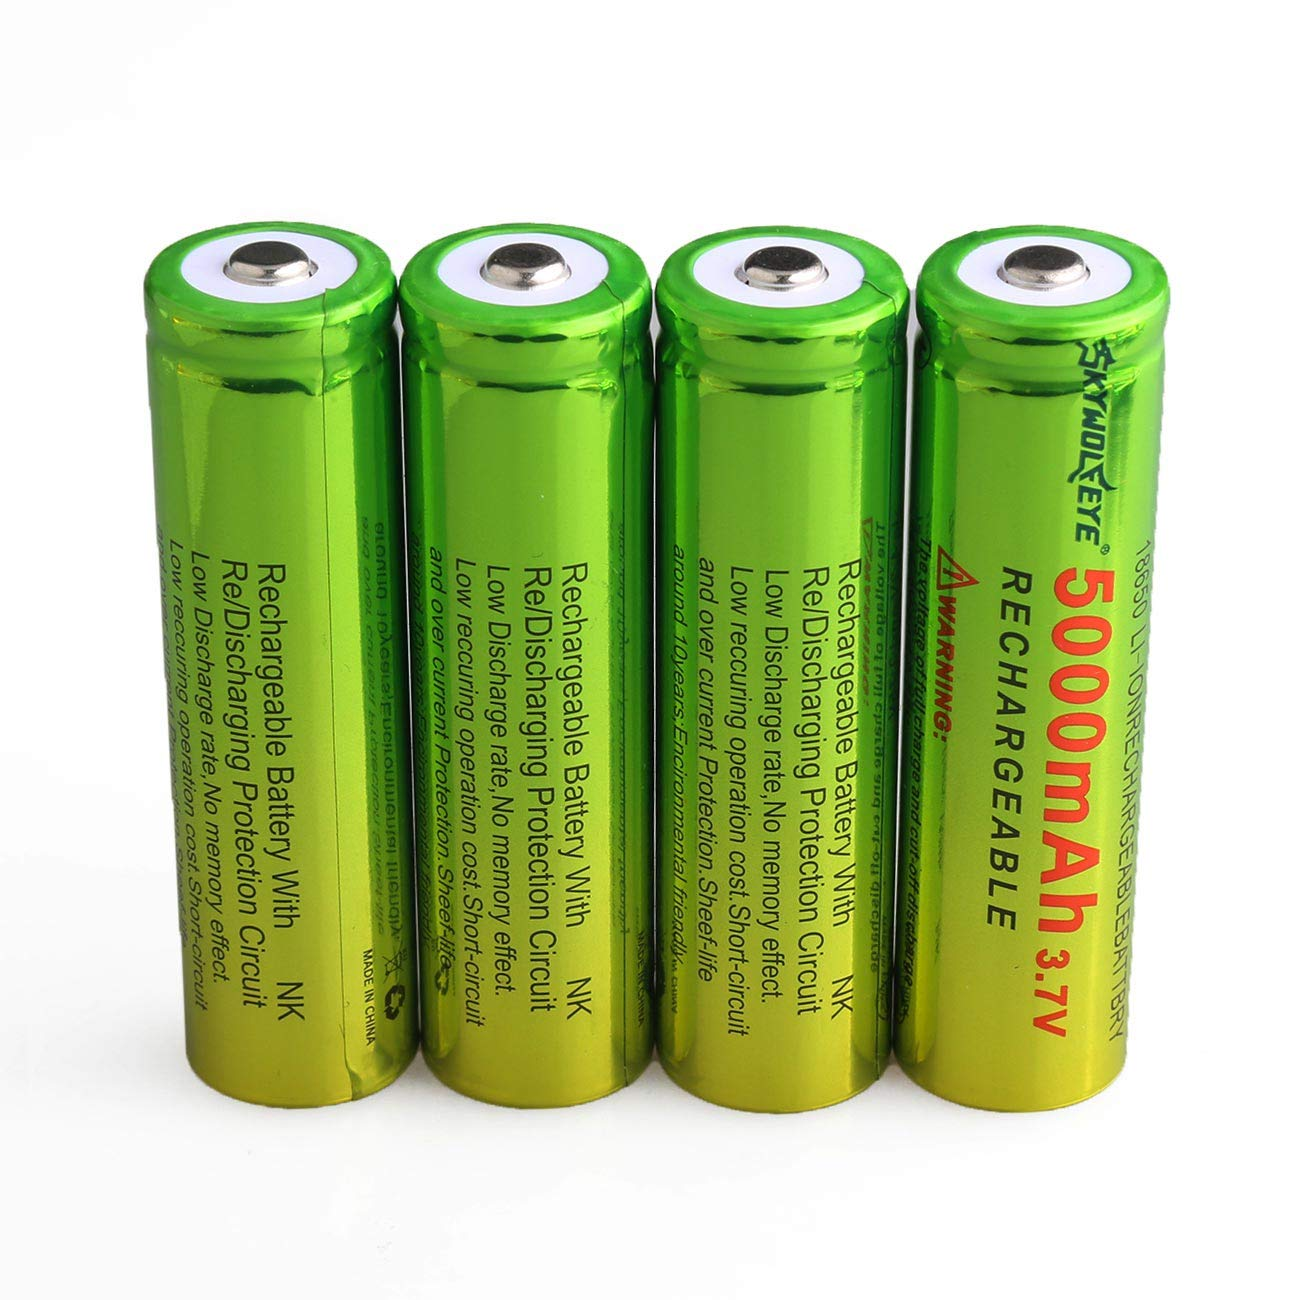 Skywolfeye 18650 Lithium Rechargeable Batteries 5000mah Protection Circuit For Led Torch Sanyo Battery Cell 37v And Li Ion 18500 16340 14500 26650 Universal Smart Charger 4pc